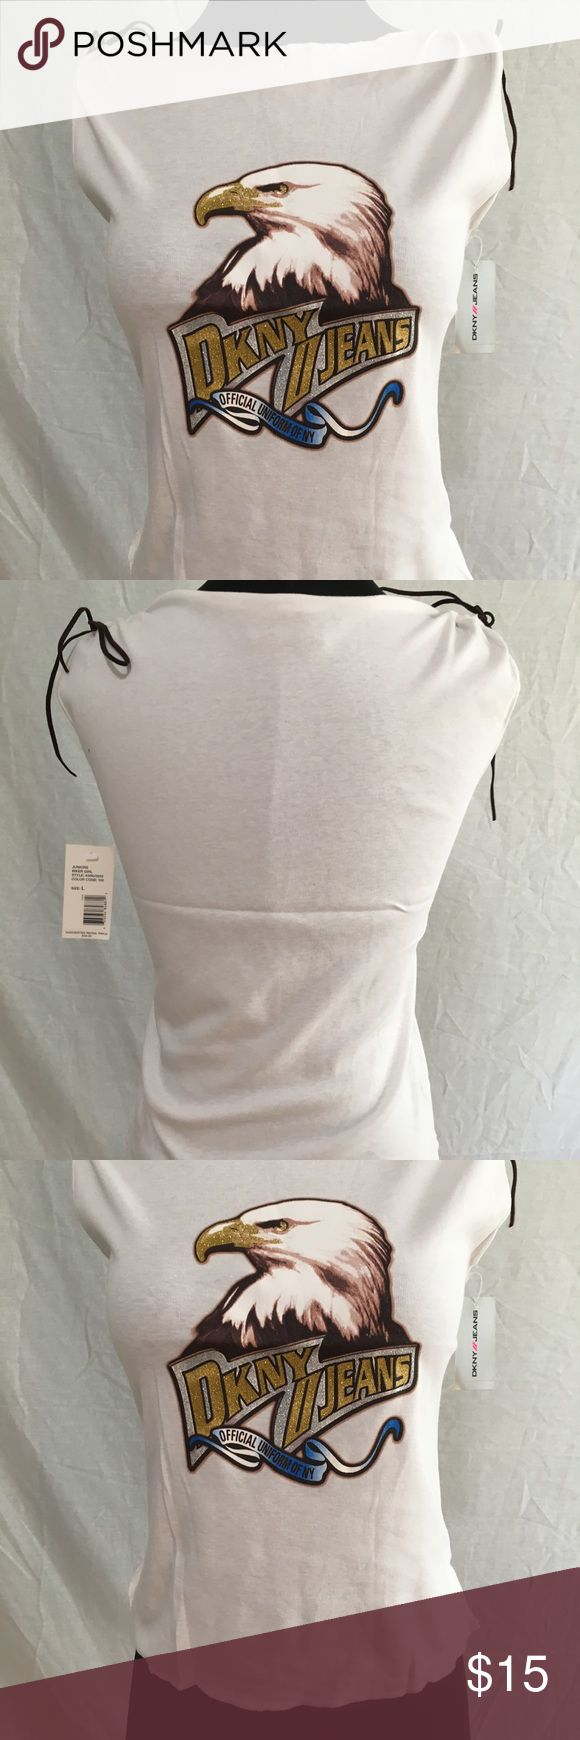 """DKNY Biker Girl Tank Top- new vintage DKNY JEANS Biker Girl Tank Top  New with tags  Style # KXRU3933 RN 52002 CA 16396  DKNY JEANS Biker Girl Tank Top is a great tank top to sport around in. From the graphic on the front to the brown """"suede"""" like """"shoe laces"""" by the shoulders that can be tied, you will look great and feel great in the one of a kind shirt. People will be sure to compliment you because this shirt is gorgeous and fun.  100% Cotton  Suggested Retail Price-$ 32.00 Dkny Tops Tank…"""